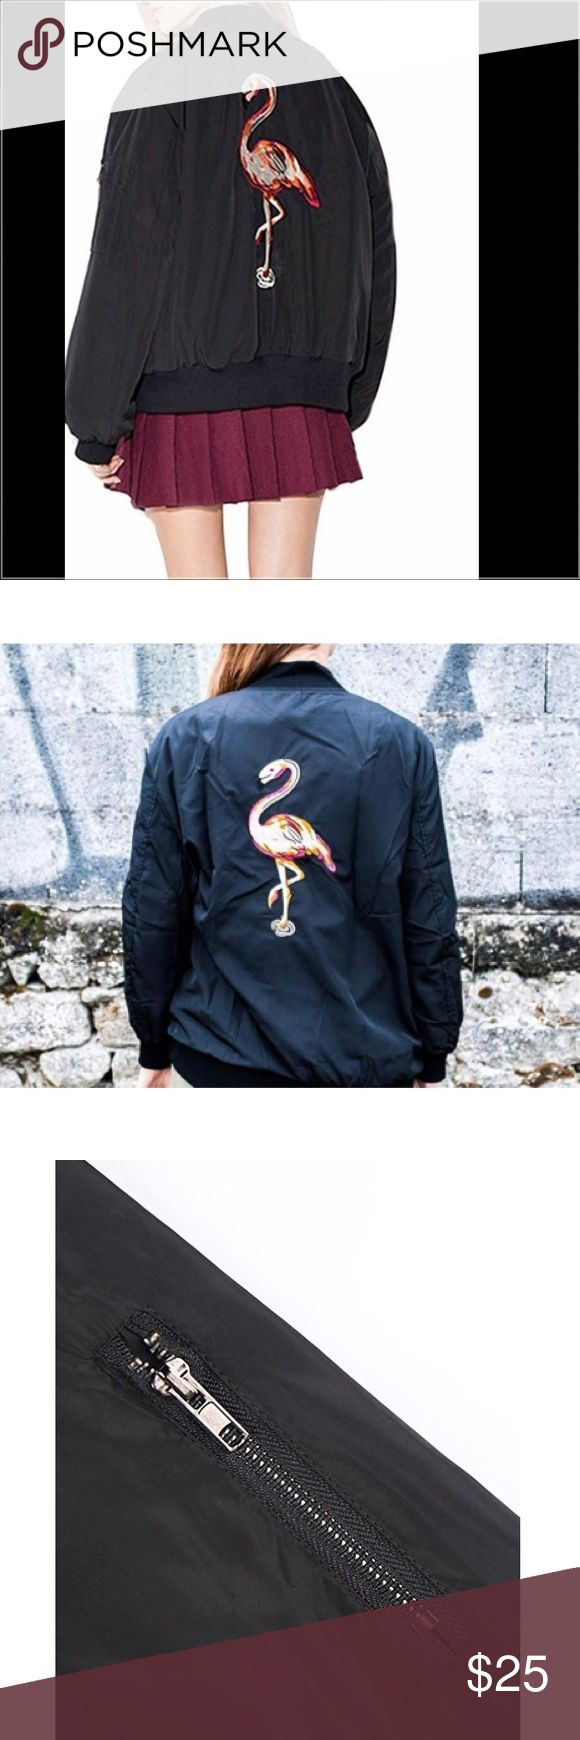 Flamingo Embroidery Lightweight Bomber Jacket 95% Polyester/5% Spandex,Chic and Trendy,Can be easily dress up or dress down. Embroidery Design,Short Jacket,Zipper up,Patchwork at the chest. Jackets & Coats